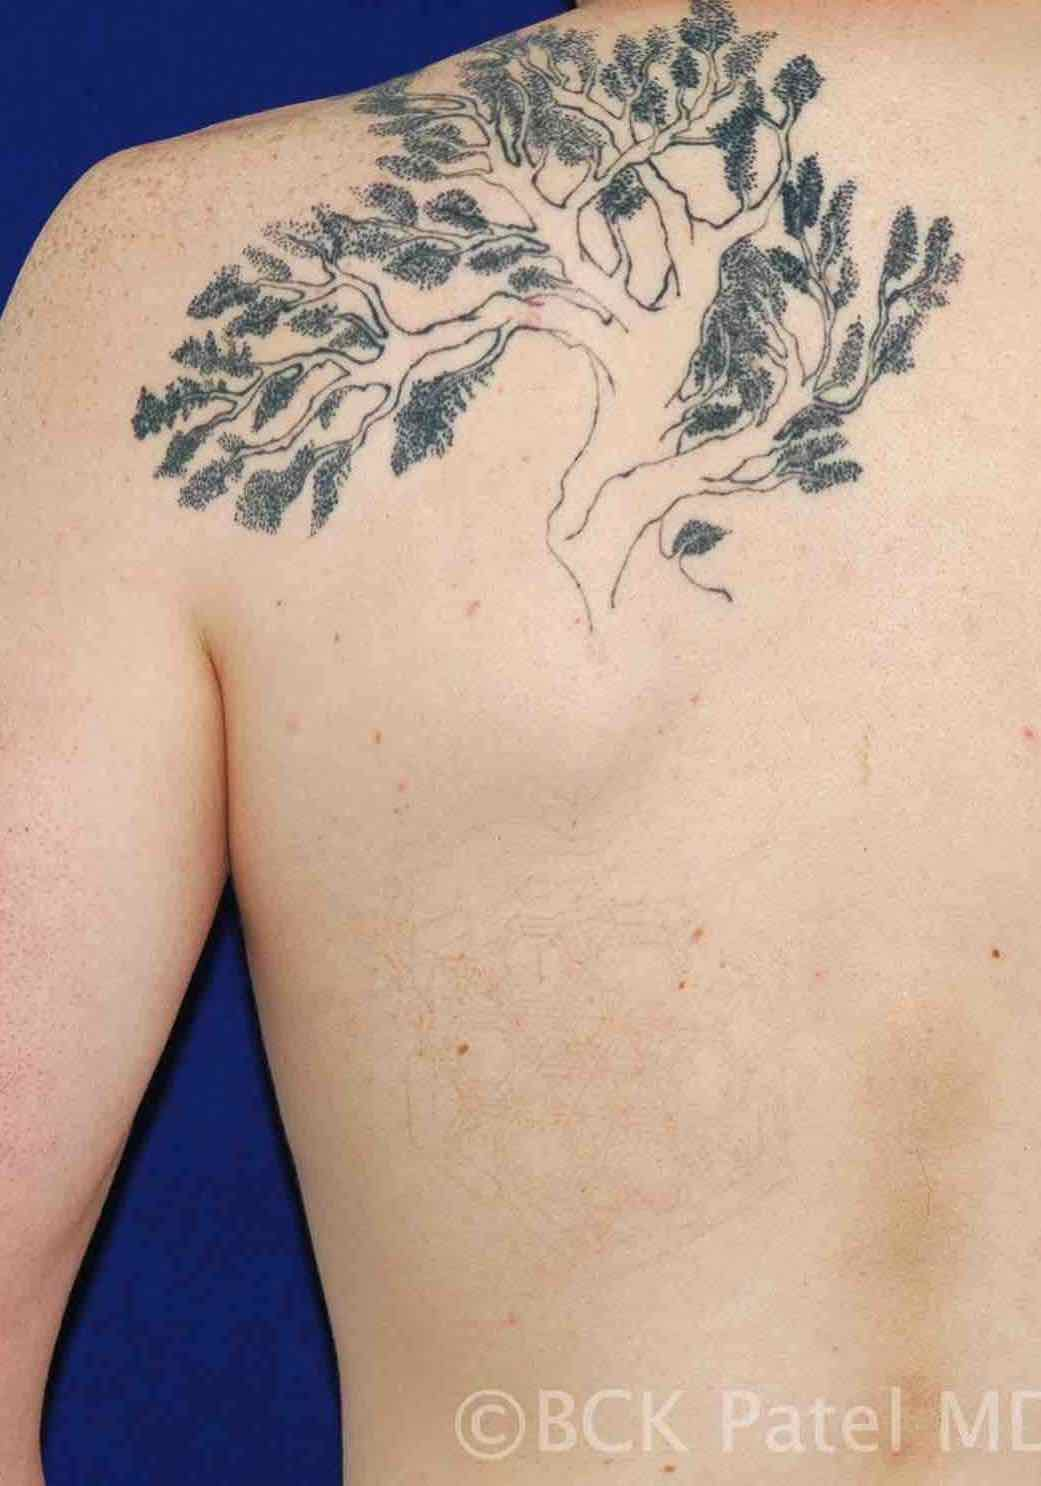 Tattoo removal by Dr. BCK Patel MD, FRCS